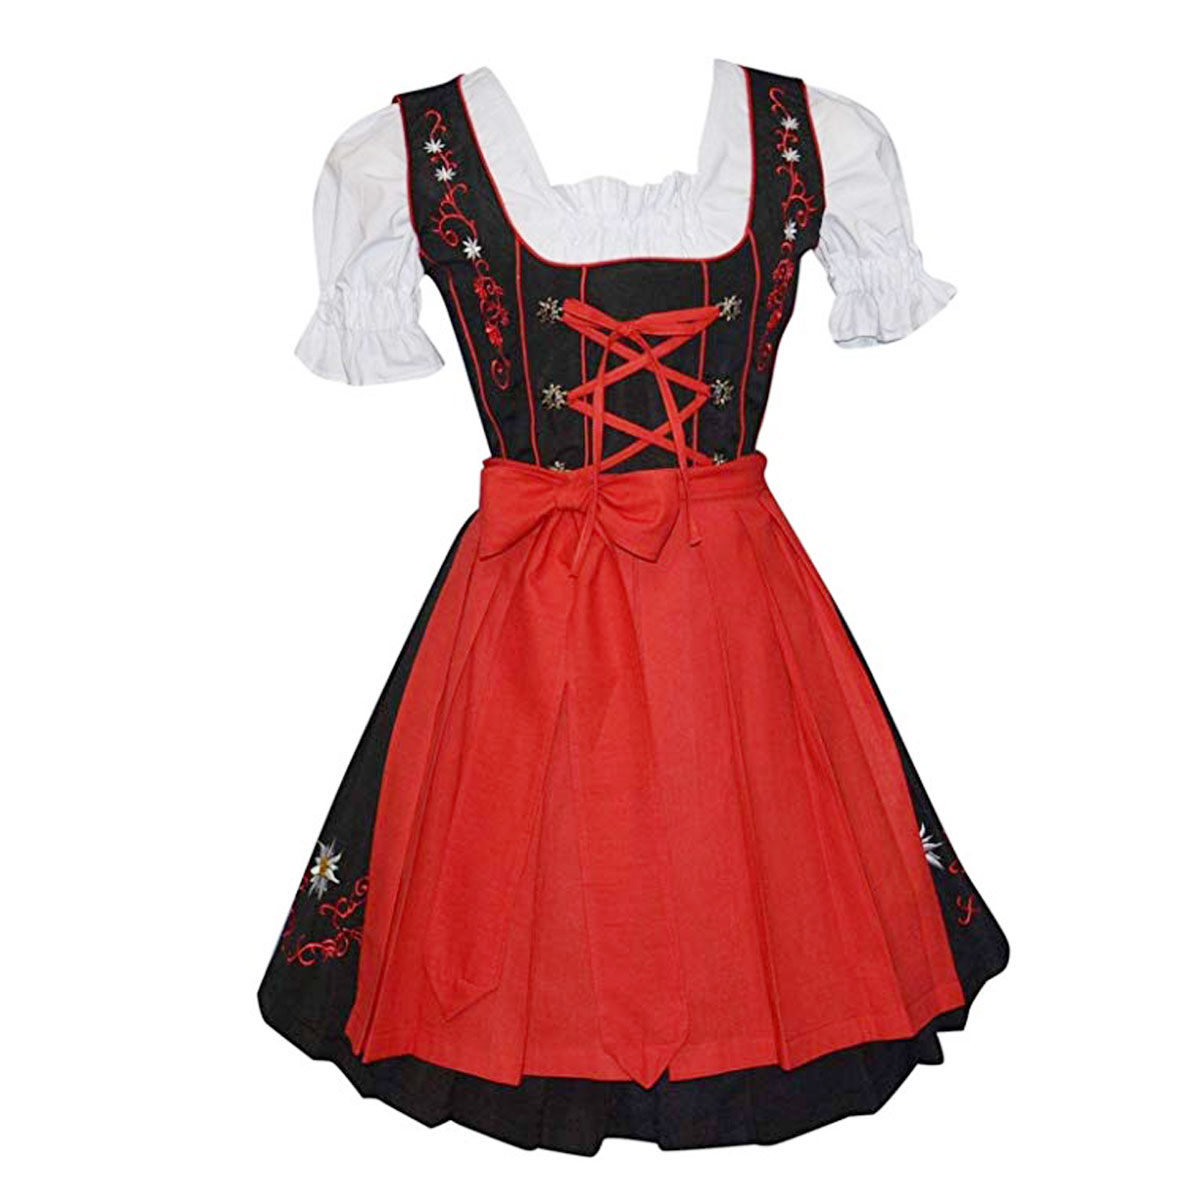 FLOWERS DIRNDL WITH LACES